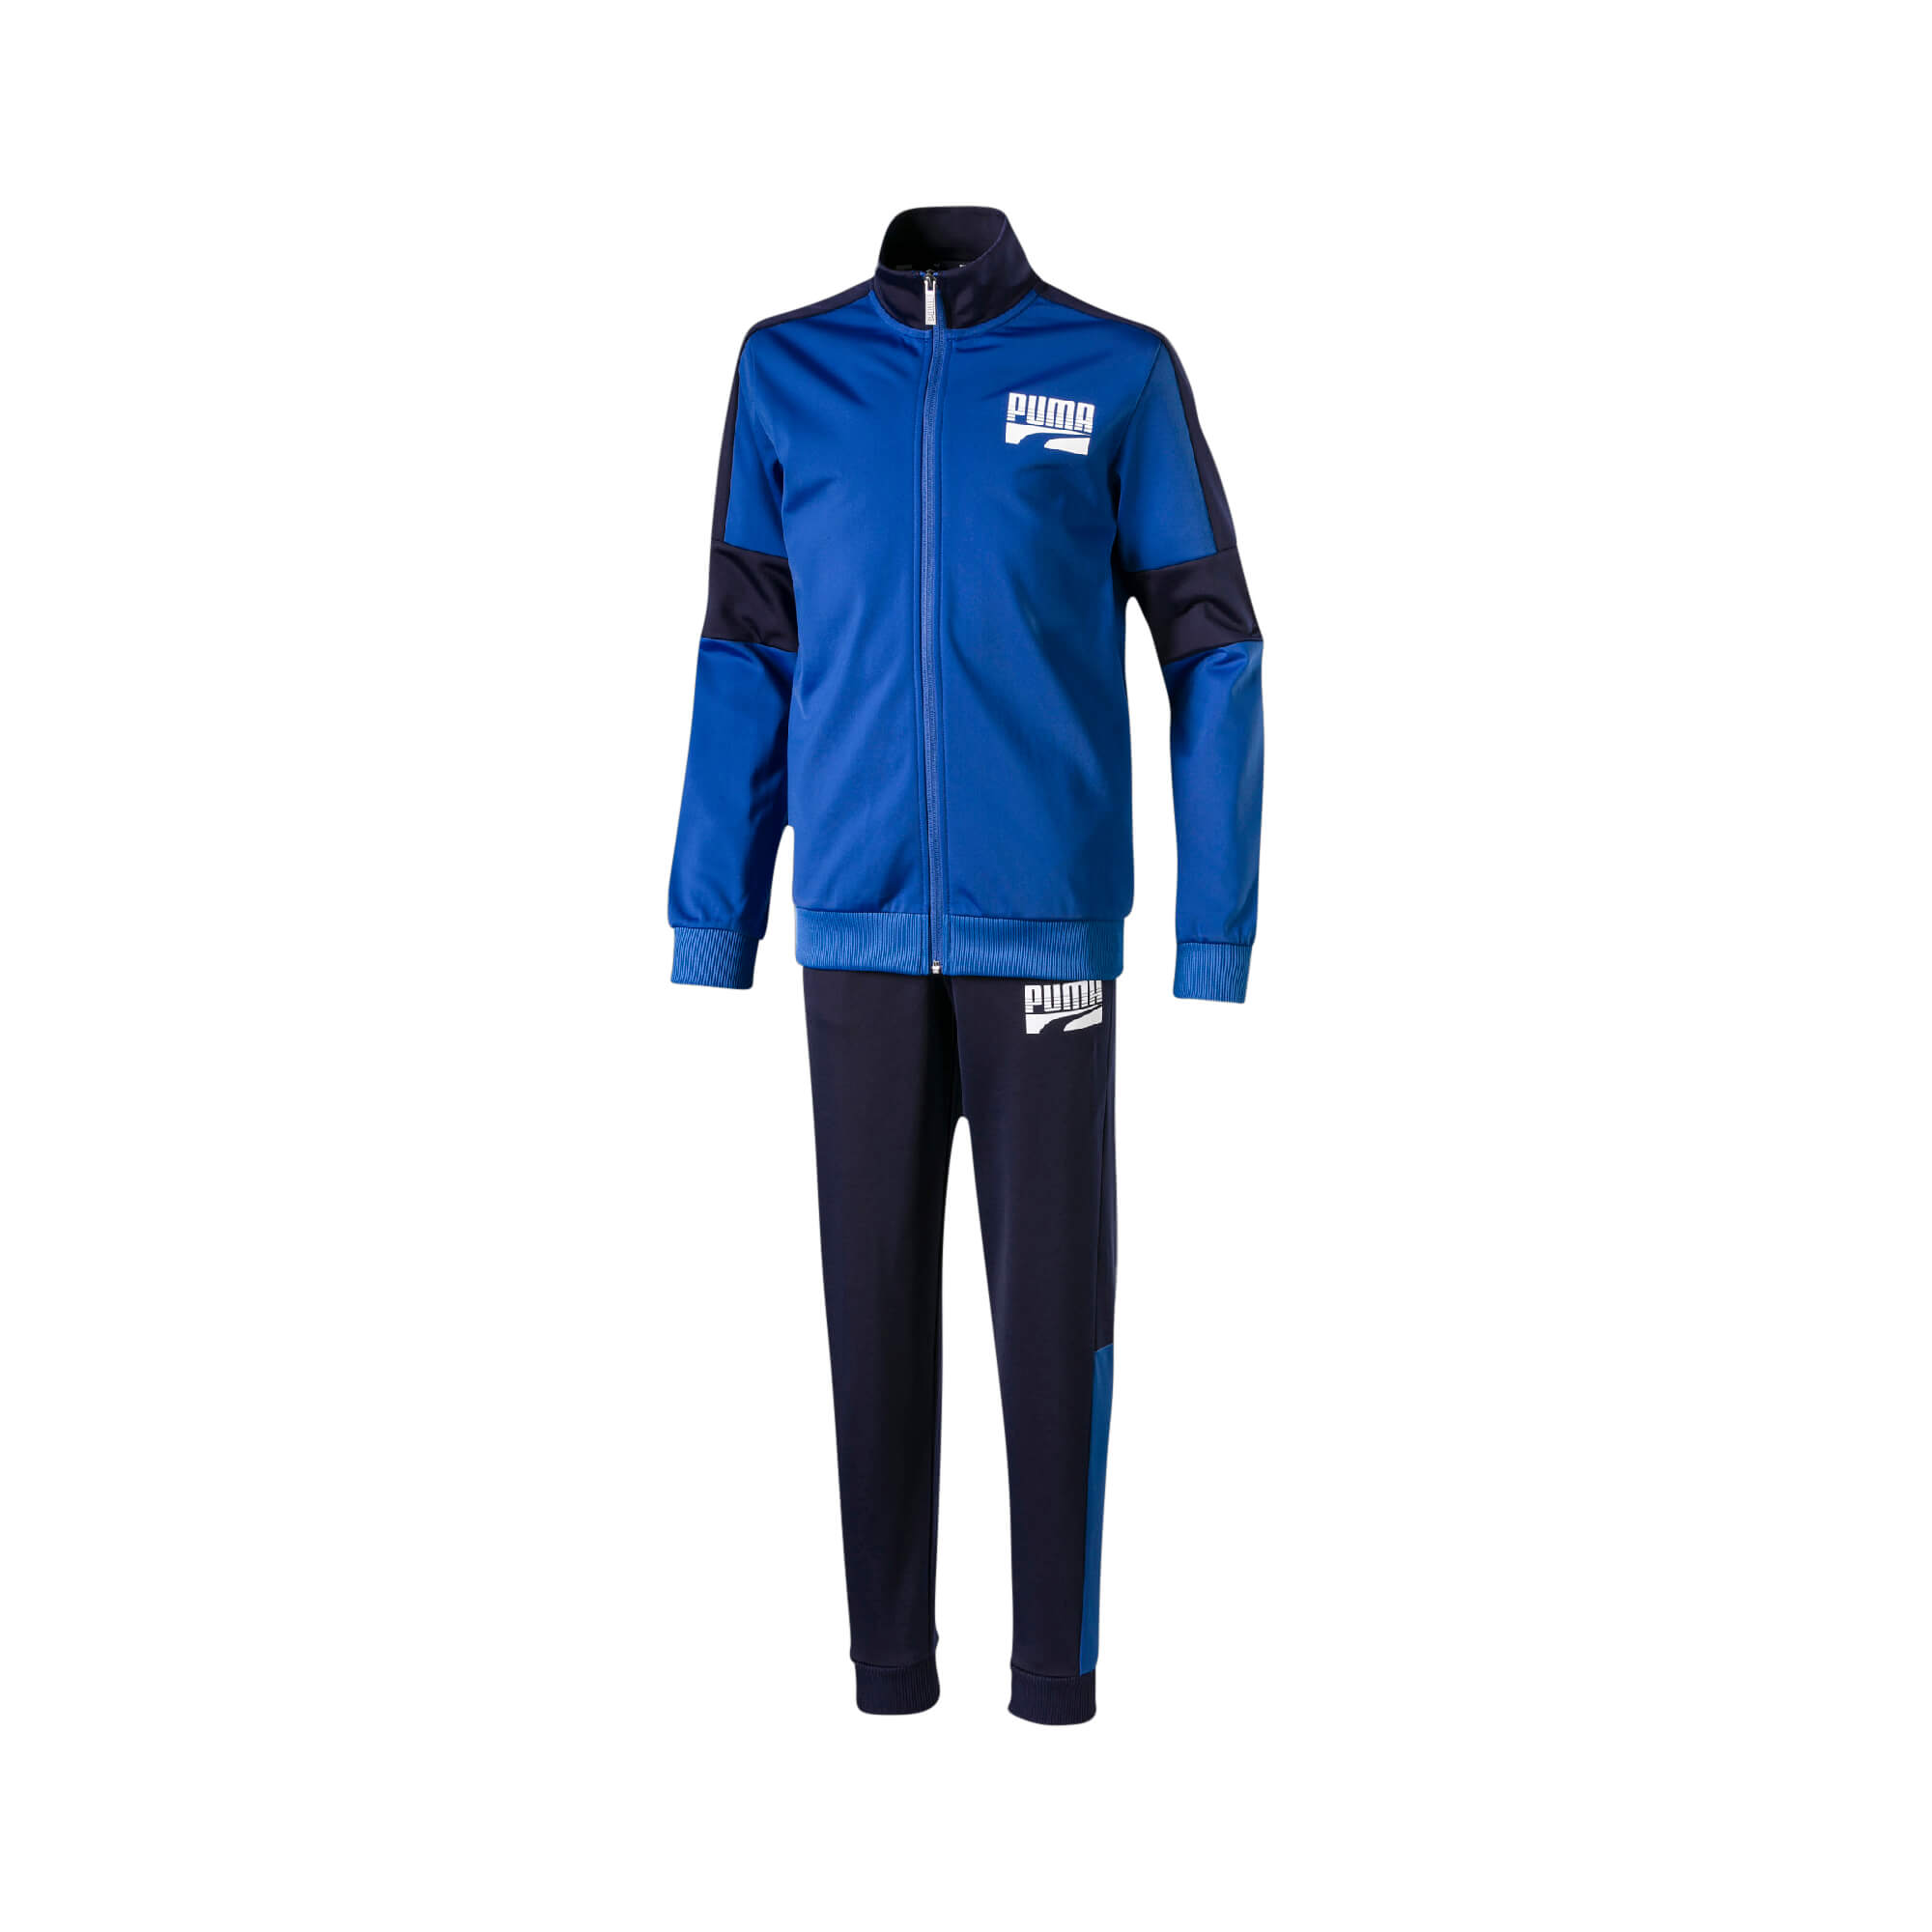 Rebel Suit Puma Oferta